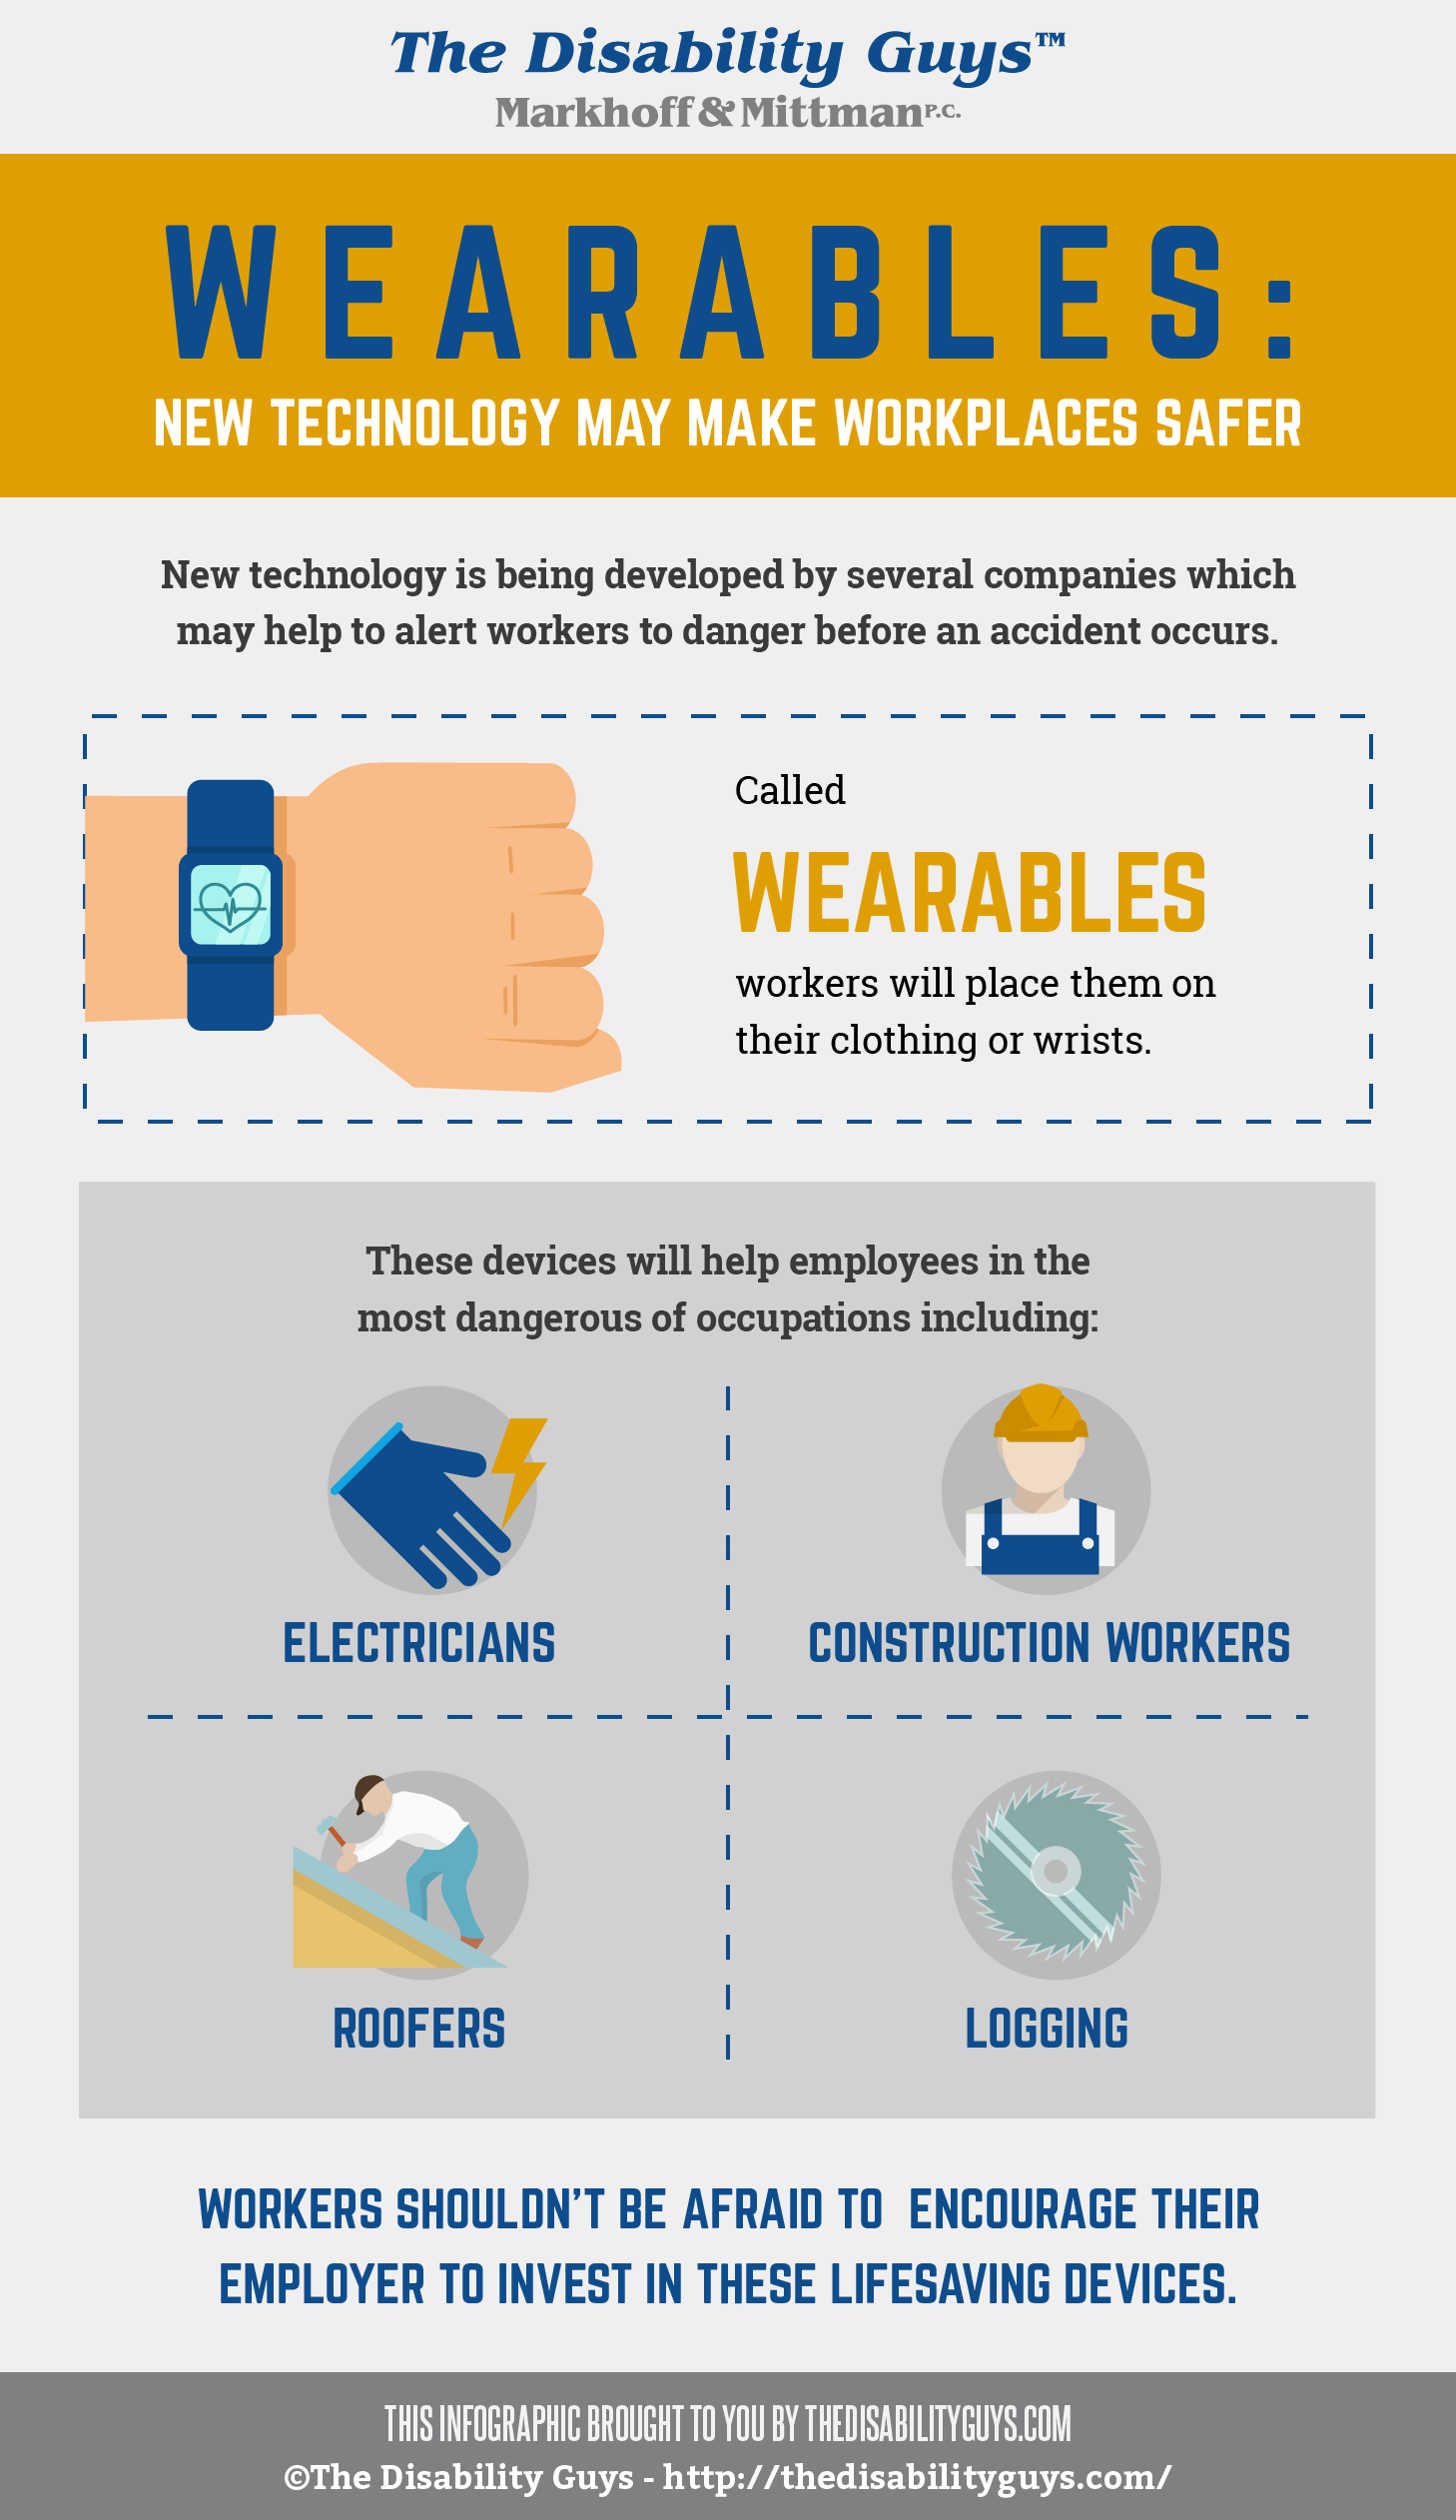 wearables-new-technology